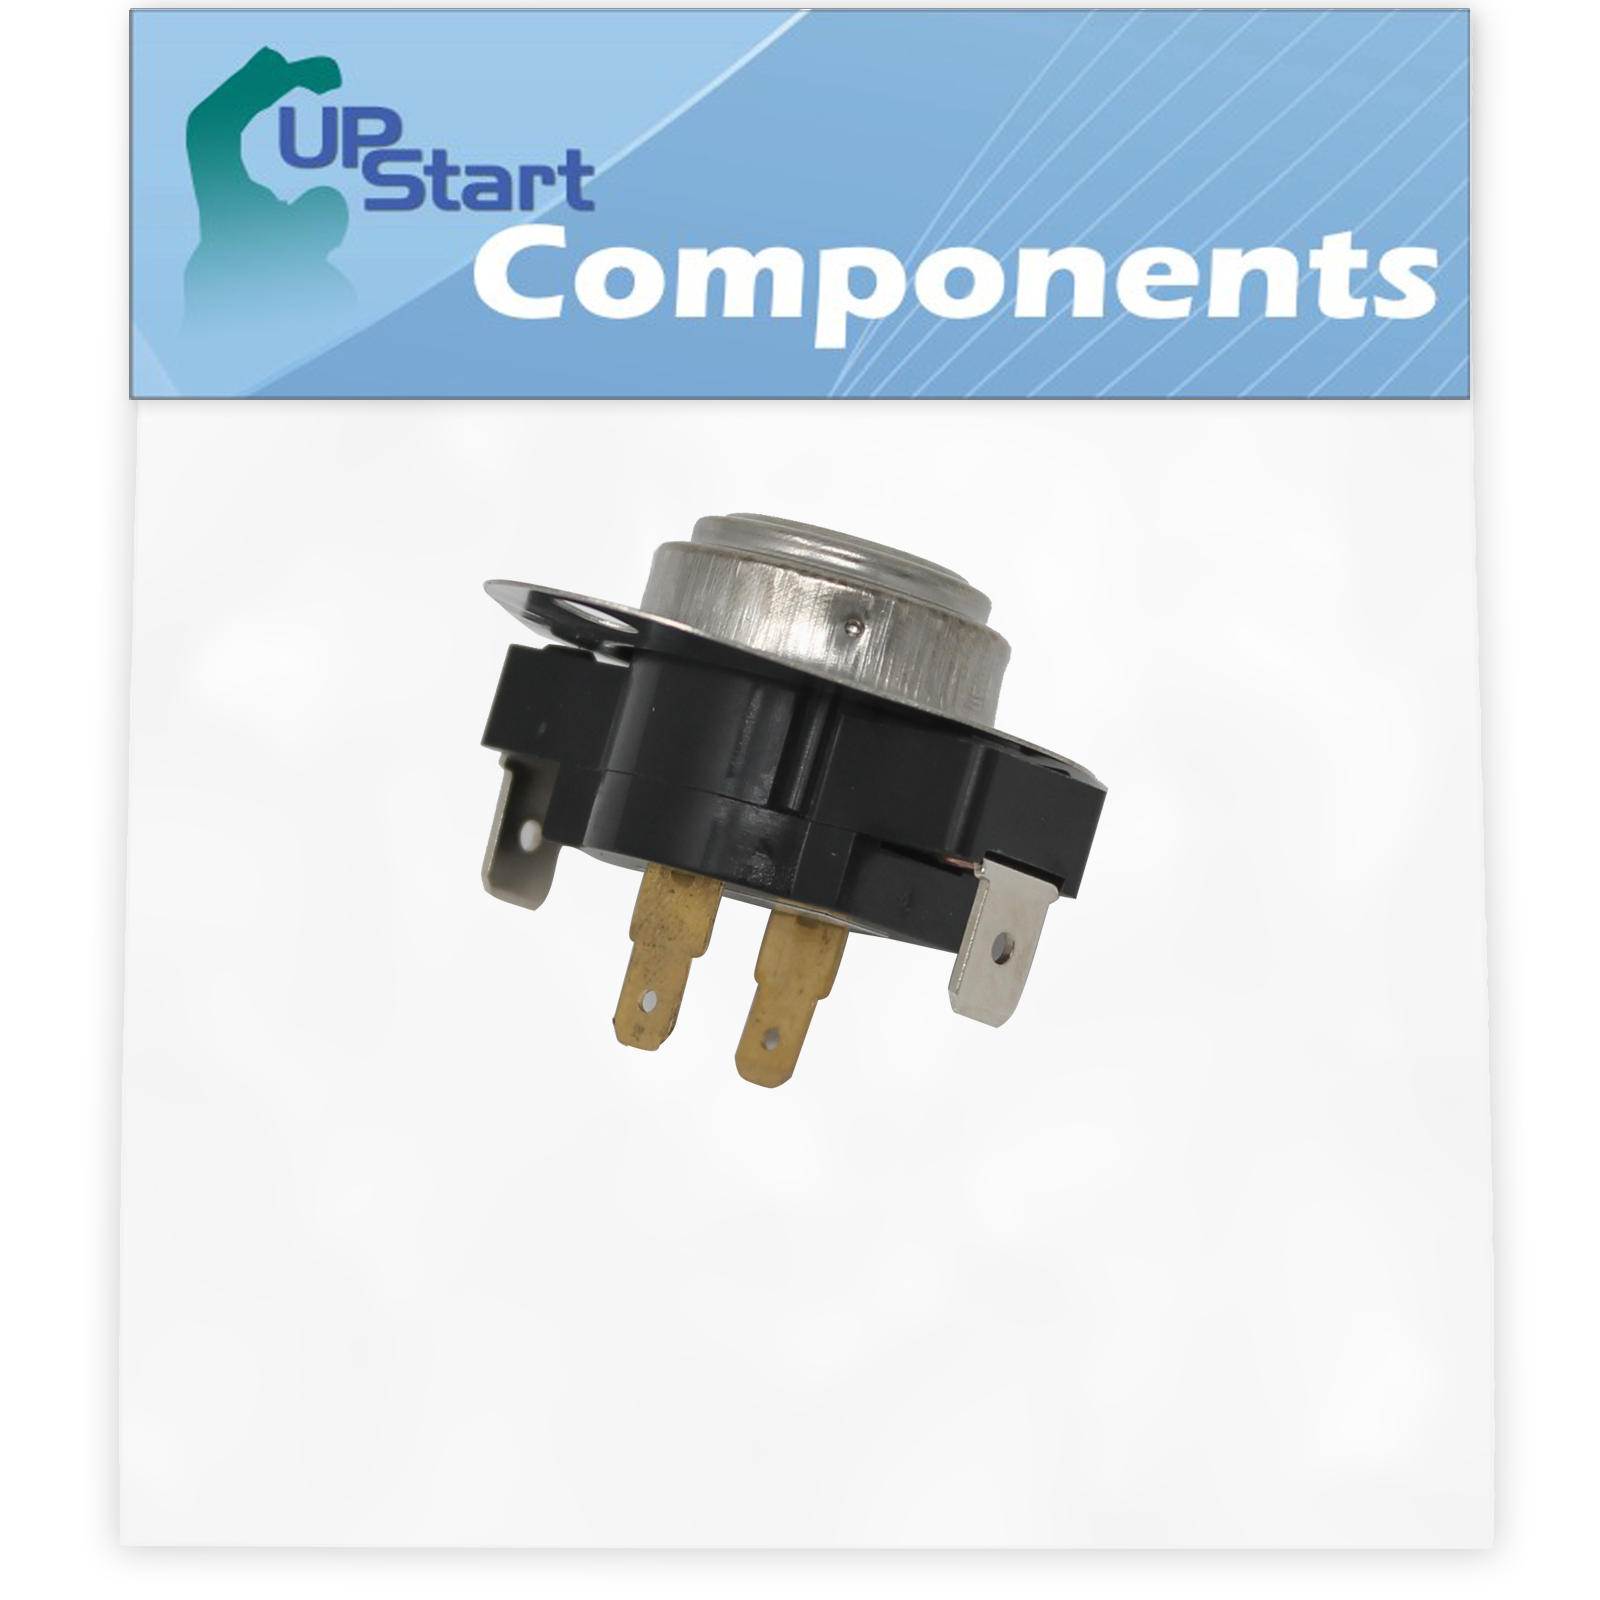 Replacement 3387134 Fixed Thermostat for Admiral, Amana, Crosley, Estate,  Inglis, Kenmore, Kitchenaid, Maytag, Roper, Whirlpool Dryers